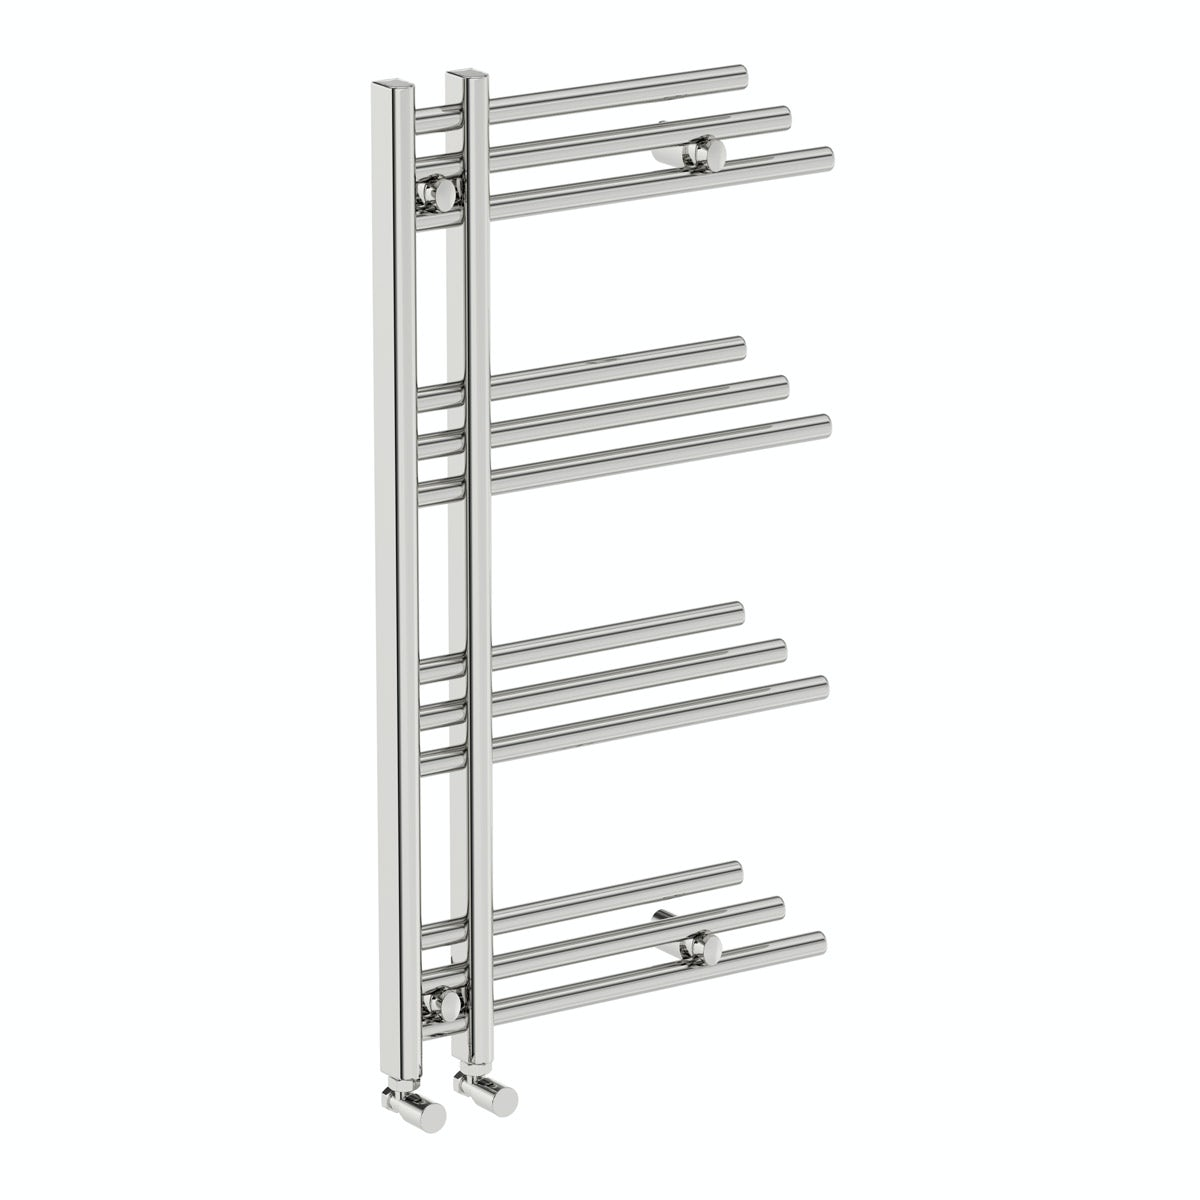 Mode Harrison heated towel rail 950 x 500 offer pack